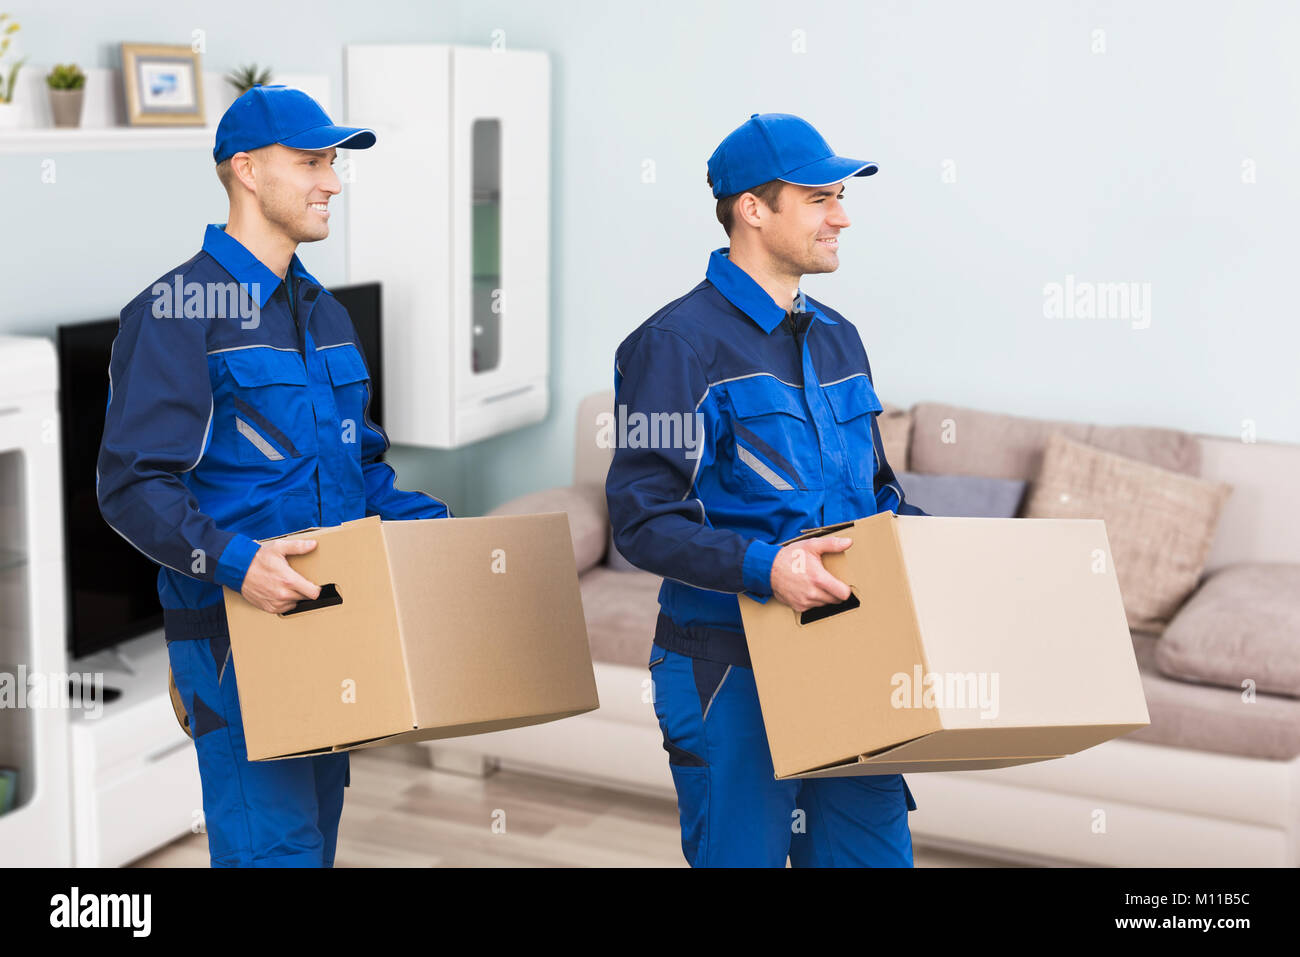 Young Smiling Professional Movers In Uniform Delivering Cardboard Boxes In Living Room Stock Photo